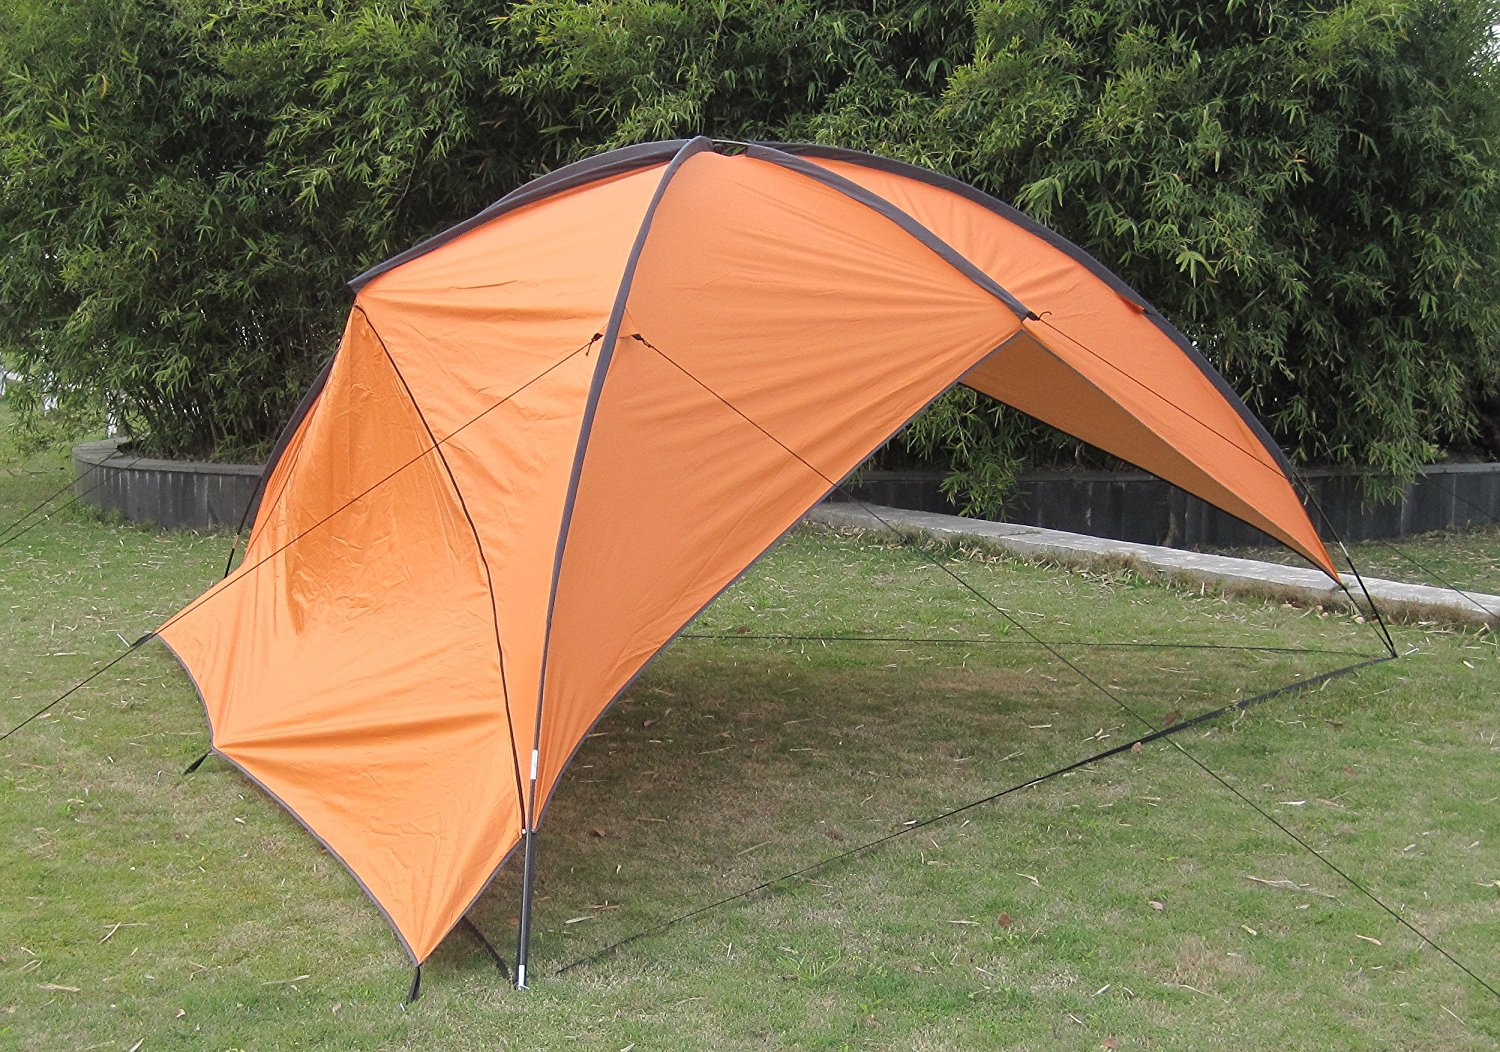 Awesome 15' X 15' X 15' Triangle Outdoors Park Beach ...